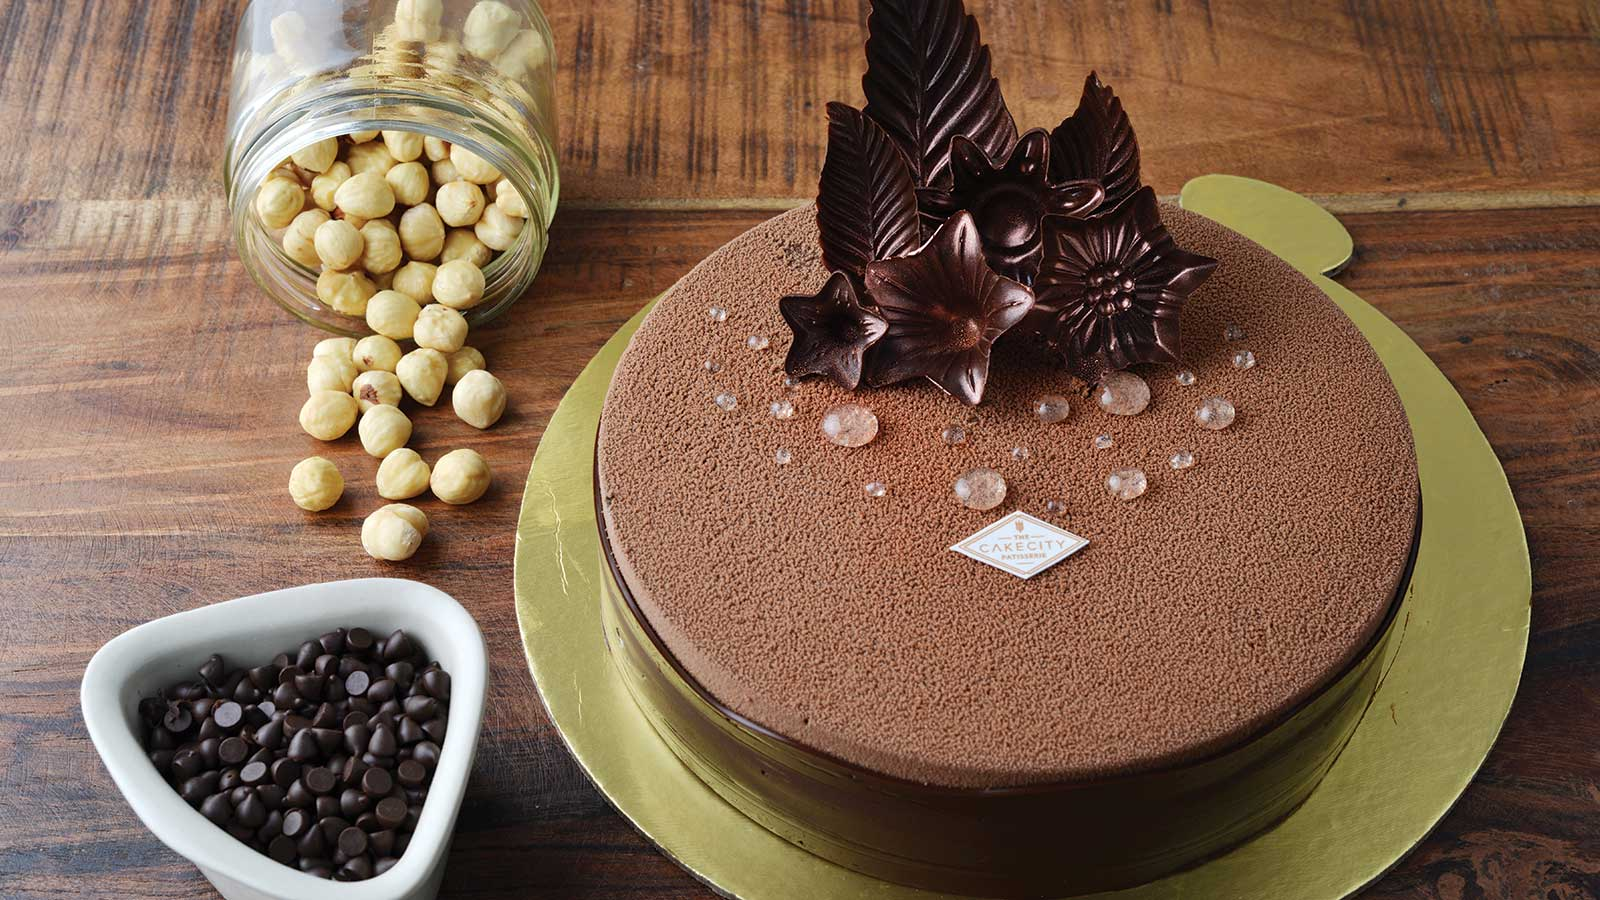 Order Cakes Desserts Bakery Cuisine Online From The Cakecity Patisserie